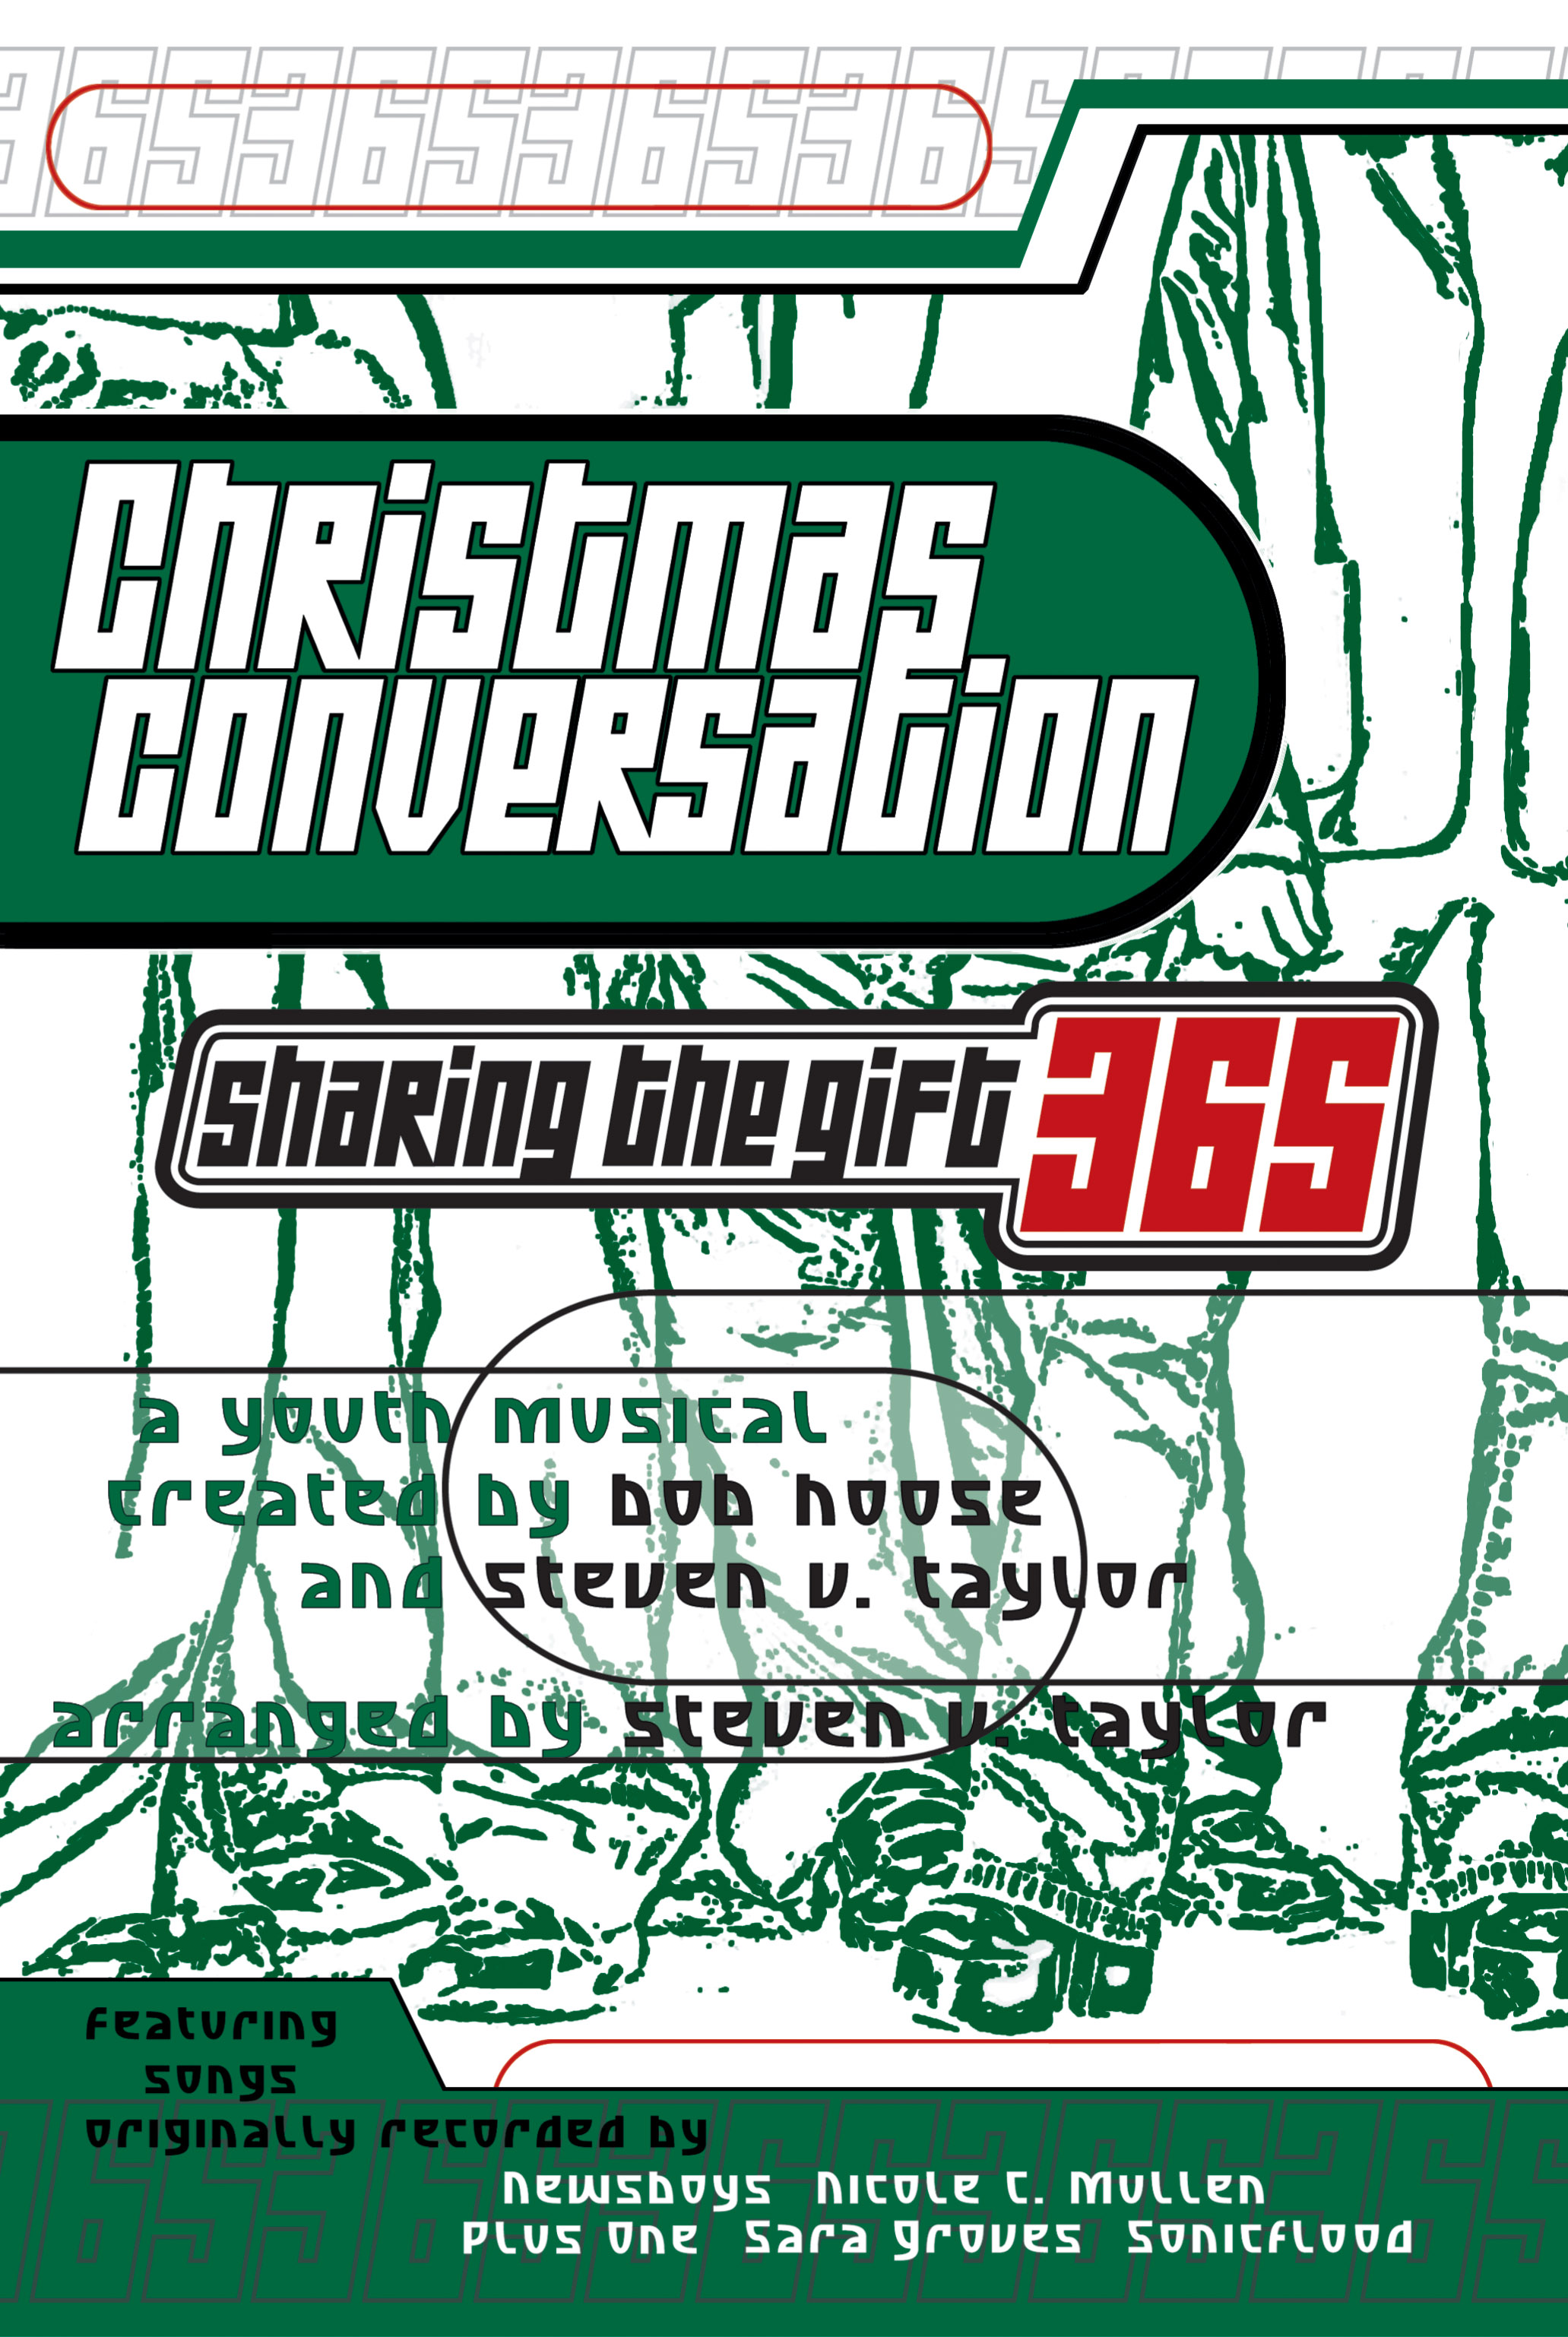 """Christmas Conversation  offers a collection of short, easily rehearsed scenes, intertwined with sparkling new Steven V. arrangements that ask the question: """"What does Christmas mean to you?""""presents a variety of challenging perspectives about Christmas along with contemporary songs originally recorded by the Newsboys, Nicole C. Mullen, Plus One, Sonicflood and Anointed, and is an excellent outreach presentation for secular audiences as well as your church. Youth and adults alike will appreciate and identify with the drama messages, and will be challenged to explore Christmas in a different light."""